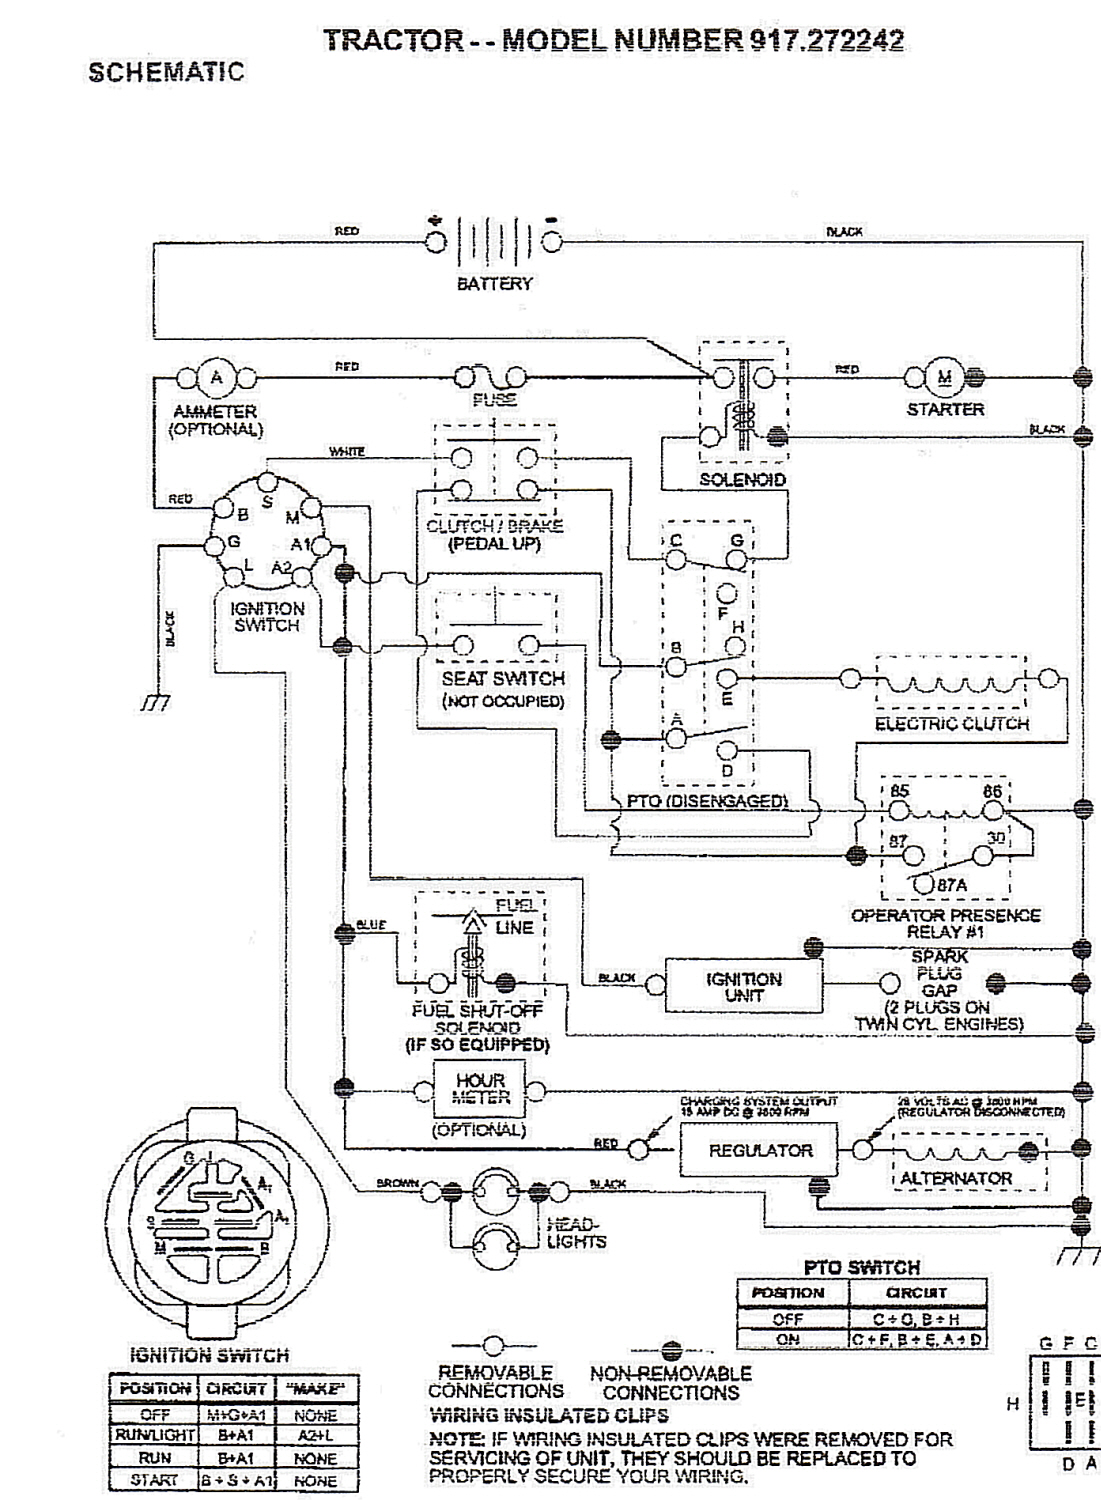 I Need Electrical Wiring Technical Manual For 91727650 Briggs And Stratton Carburetor Diagram Http Wwwsearspartsdirectcom Aa33075a Cefd 4aec 836a 55c6fbc8d08d Craftsman 917 272242